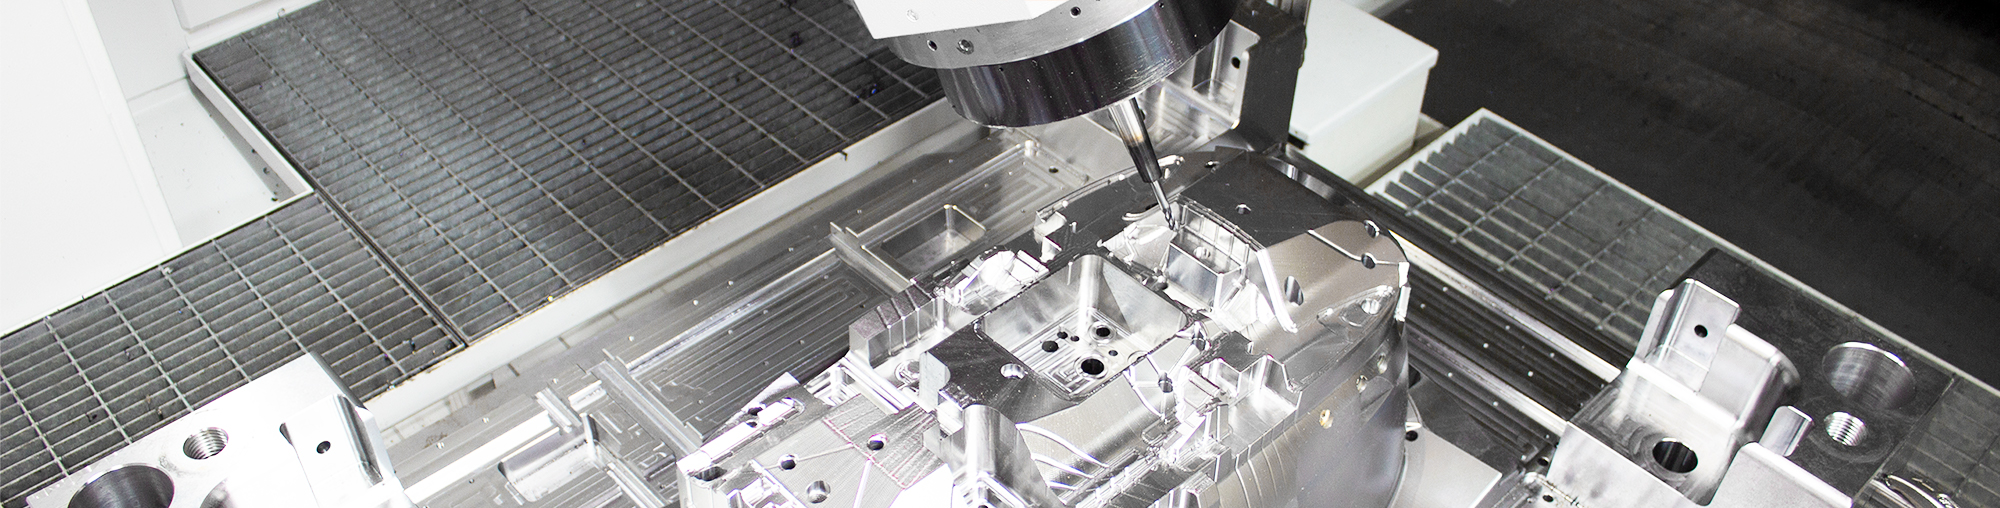 frame mold in UMIL 1800 milling machine